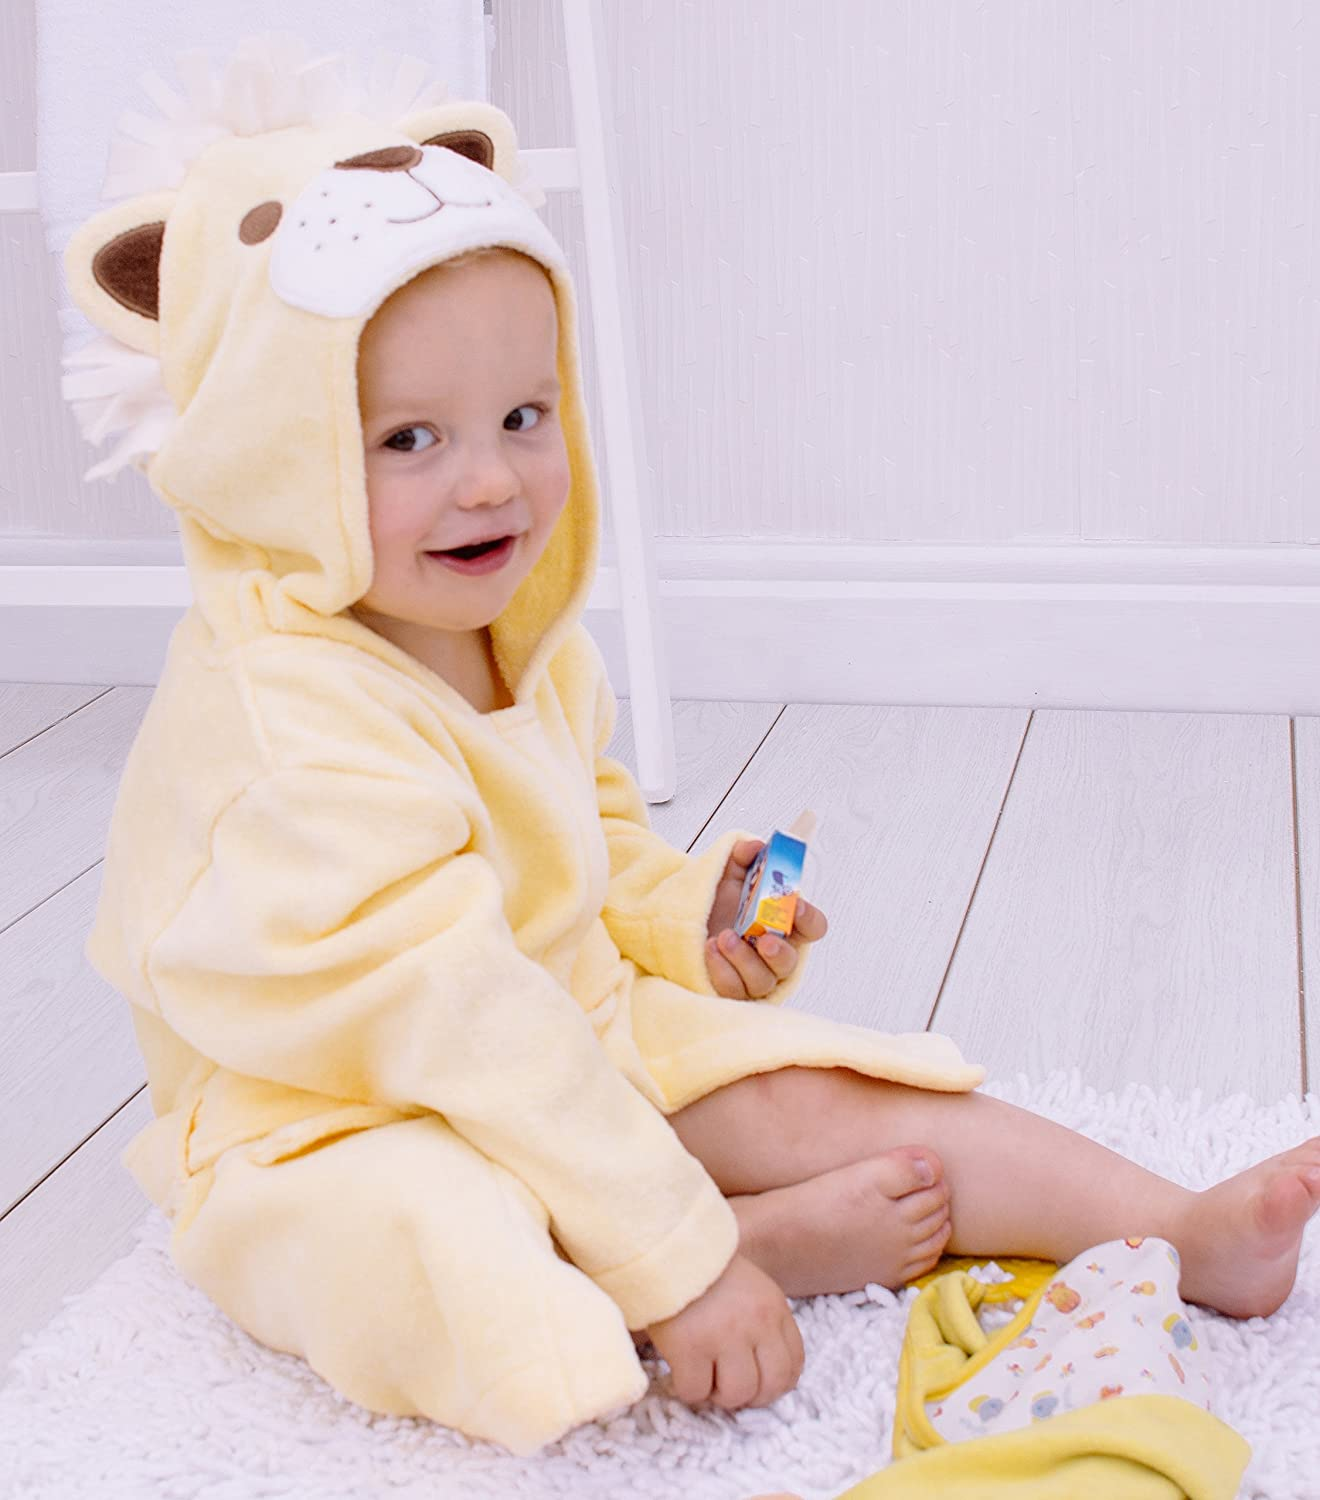 Bathing Bunnies Hooded Lion Bath Robe Cotton for 1-3 Year Old Surrey AT Company Ltd 760415LTR